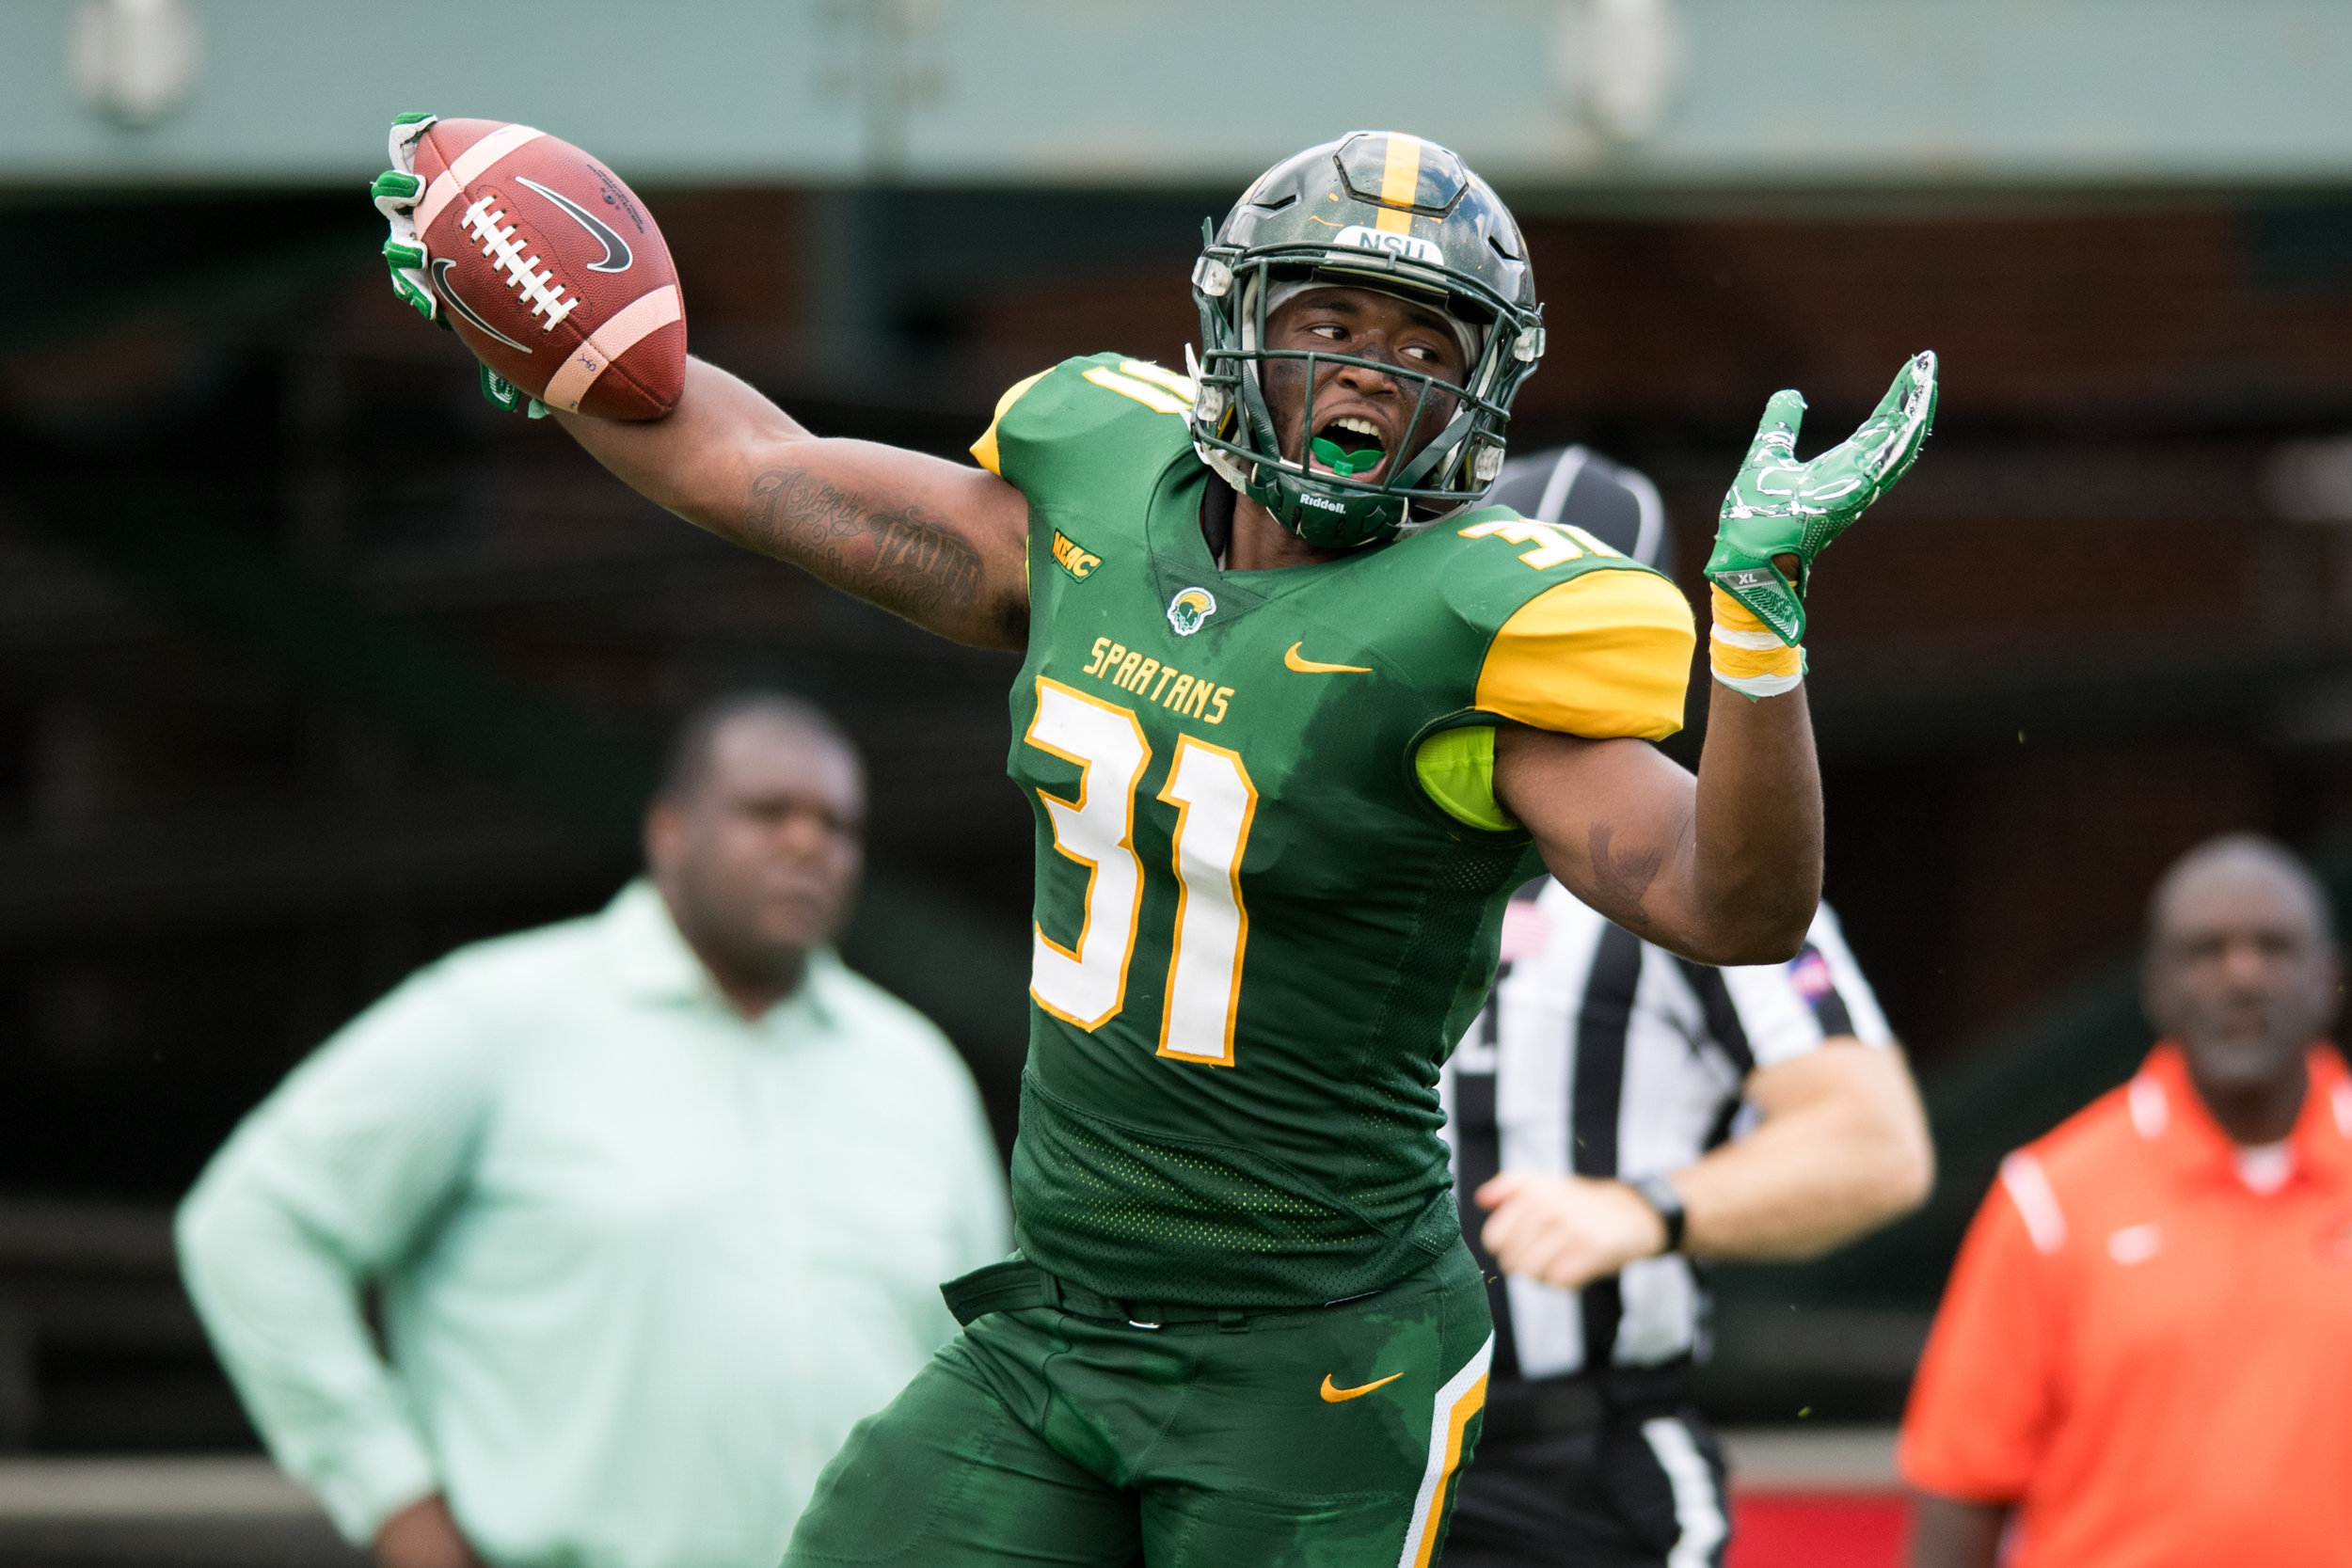 Norfolk State Spartans linebacker Kyle Archie (31) celebrates after recovering a fumble and a running for a touchdown against the Florida A&M Rattlers during the Saturday, October 7th 2017 game held at Dick Price Stadium in Norfolk, Virginia. Score is tied 14-14 at the half.